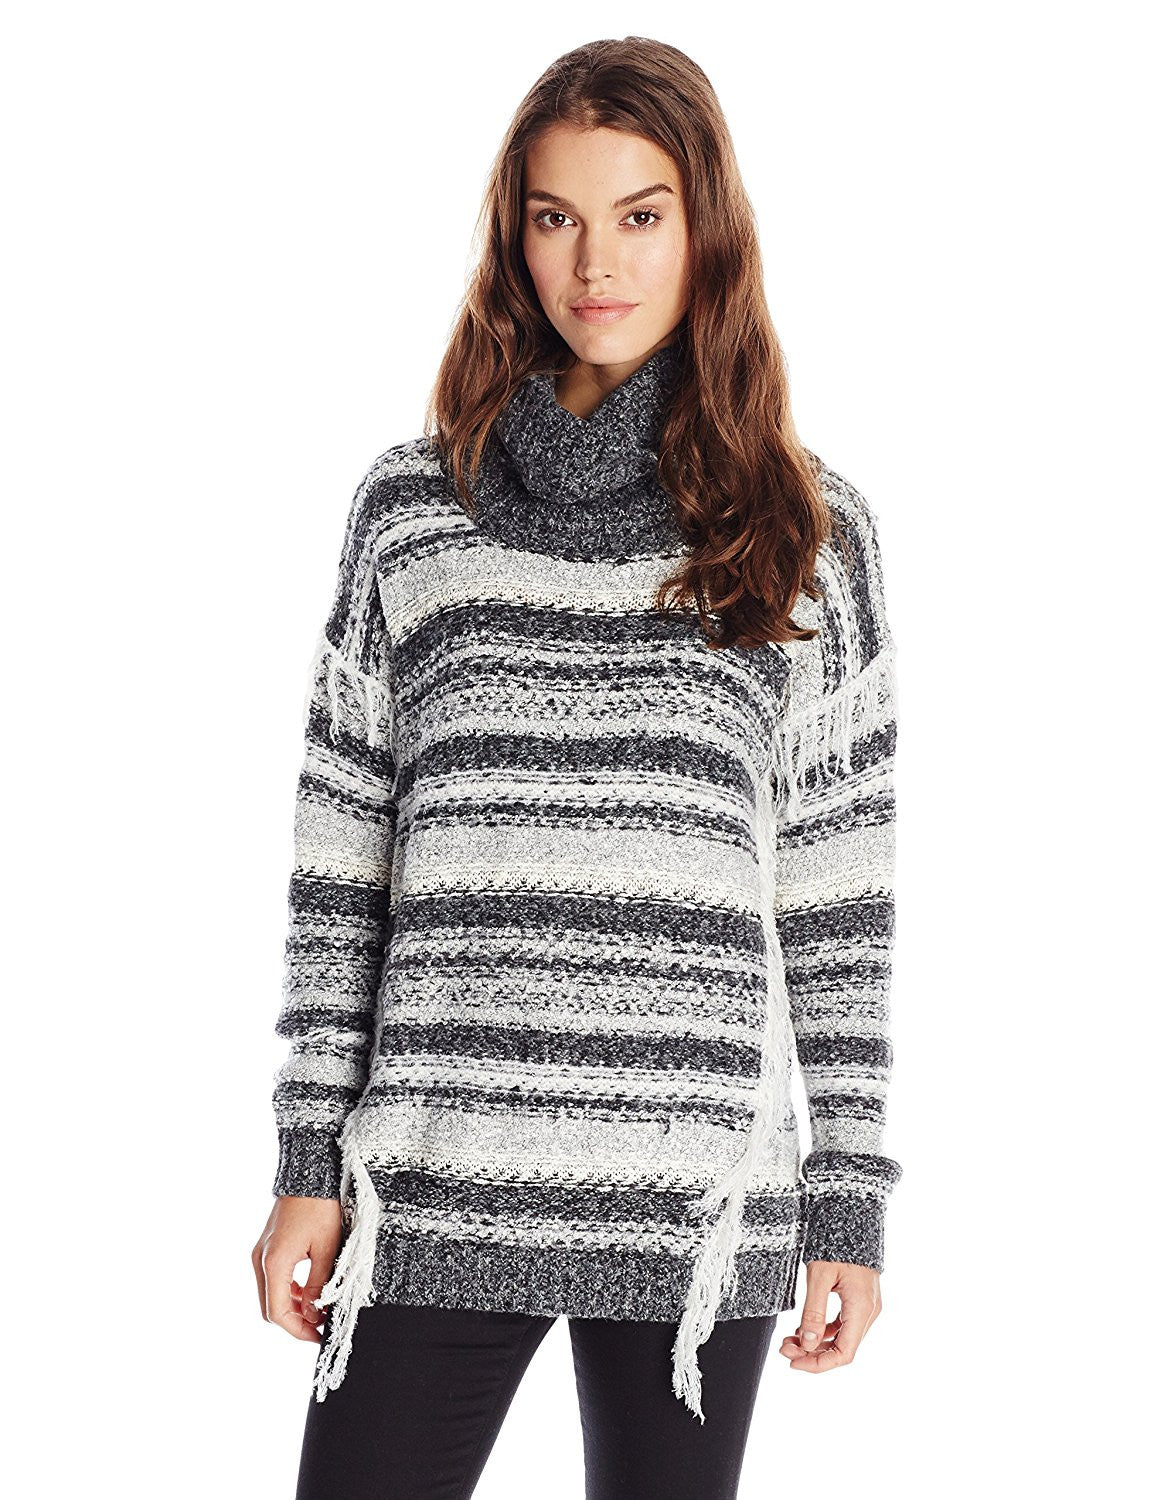 Kensie Women's Cozy Multi-Yarn Sweater - Gear Relapse